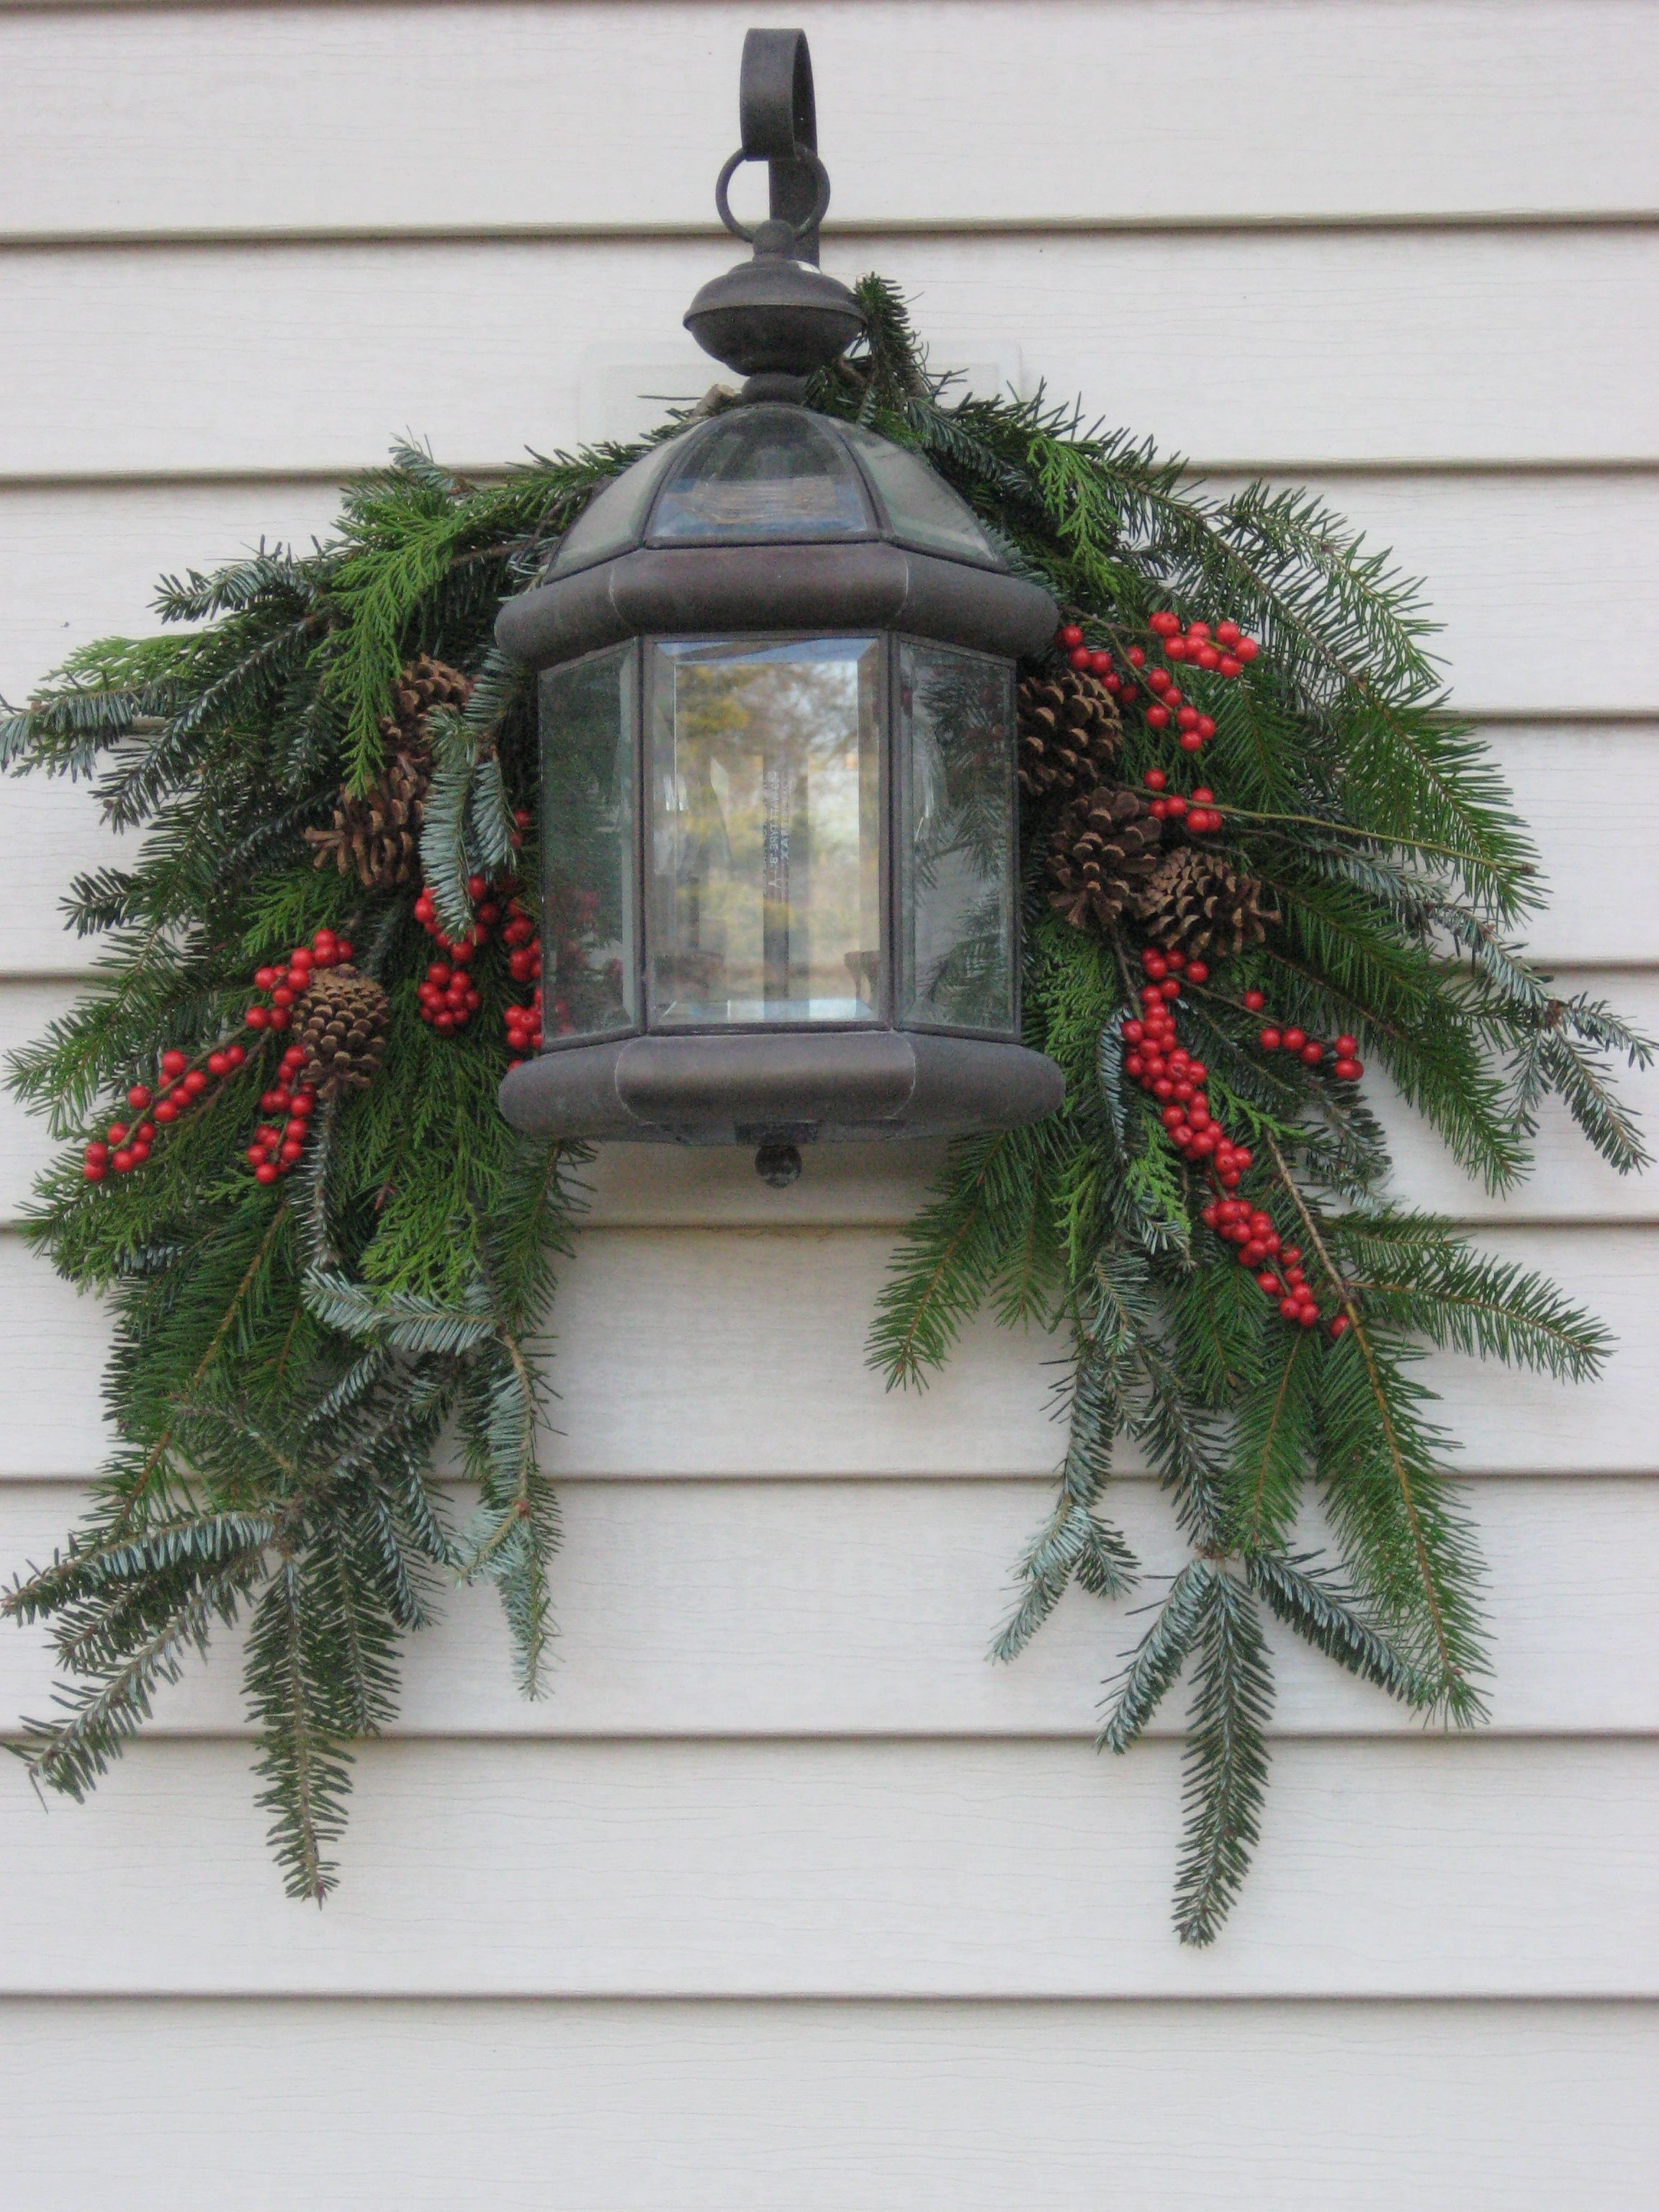 Current Outdoor Lanterns For Christmas With Regard To A Guide To Beautiful (And Not Tacky) Outdoor Holiday Decor (Gallery 2 of 20)